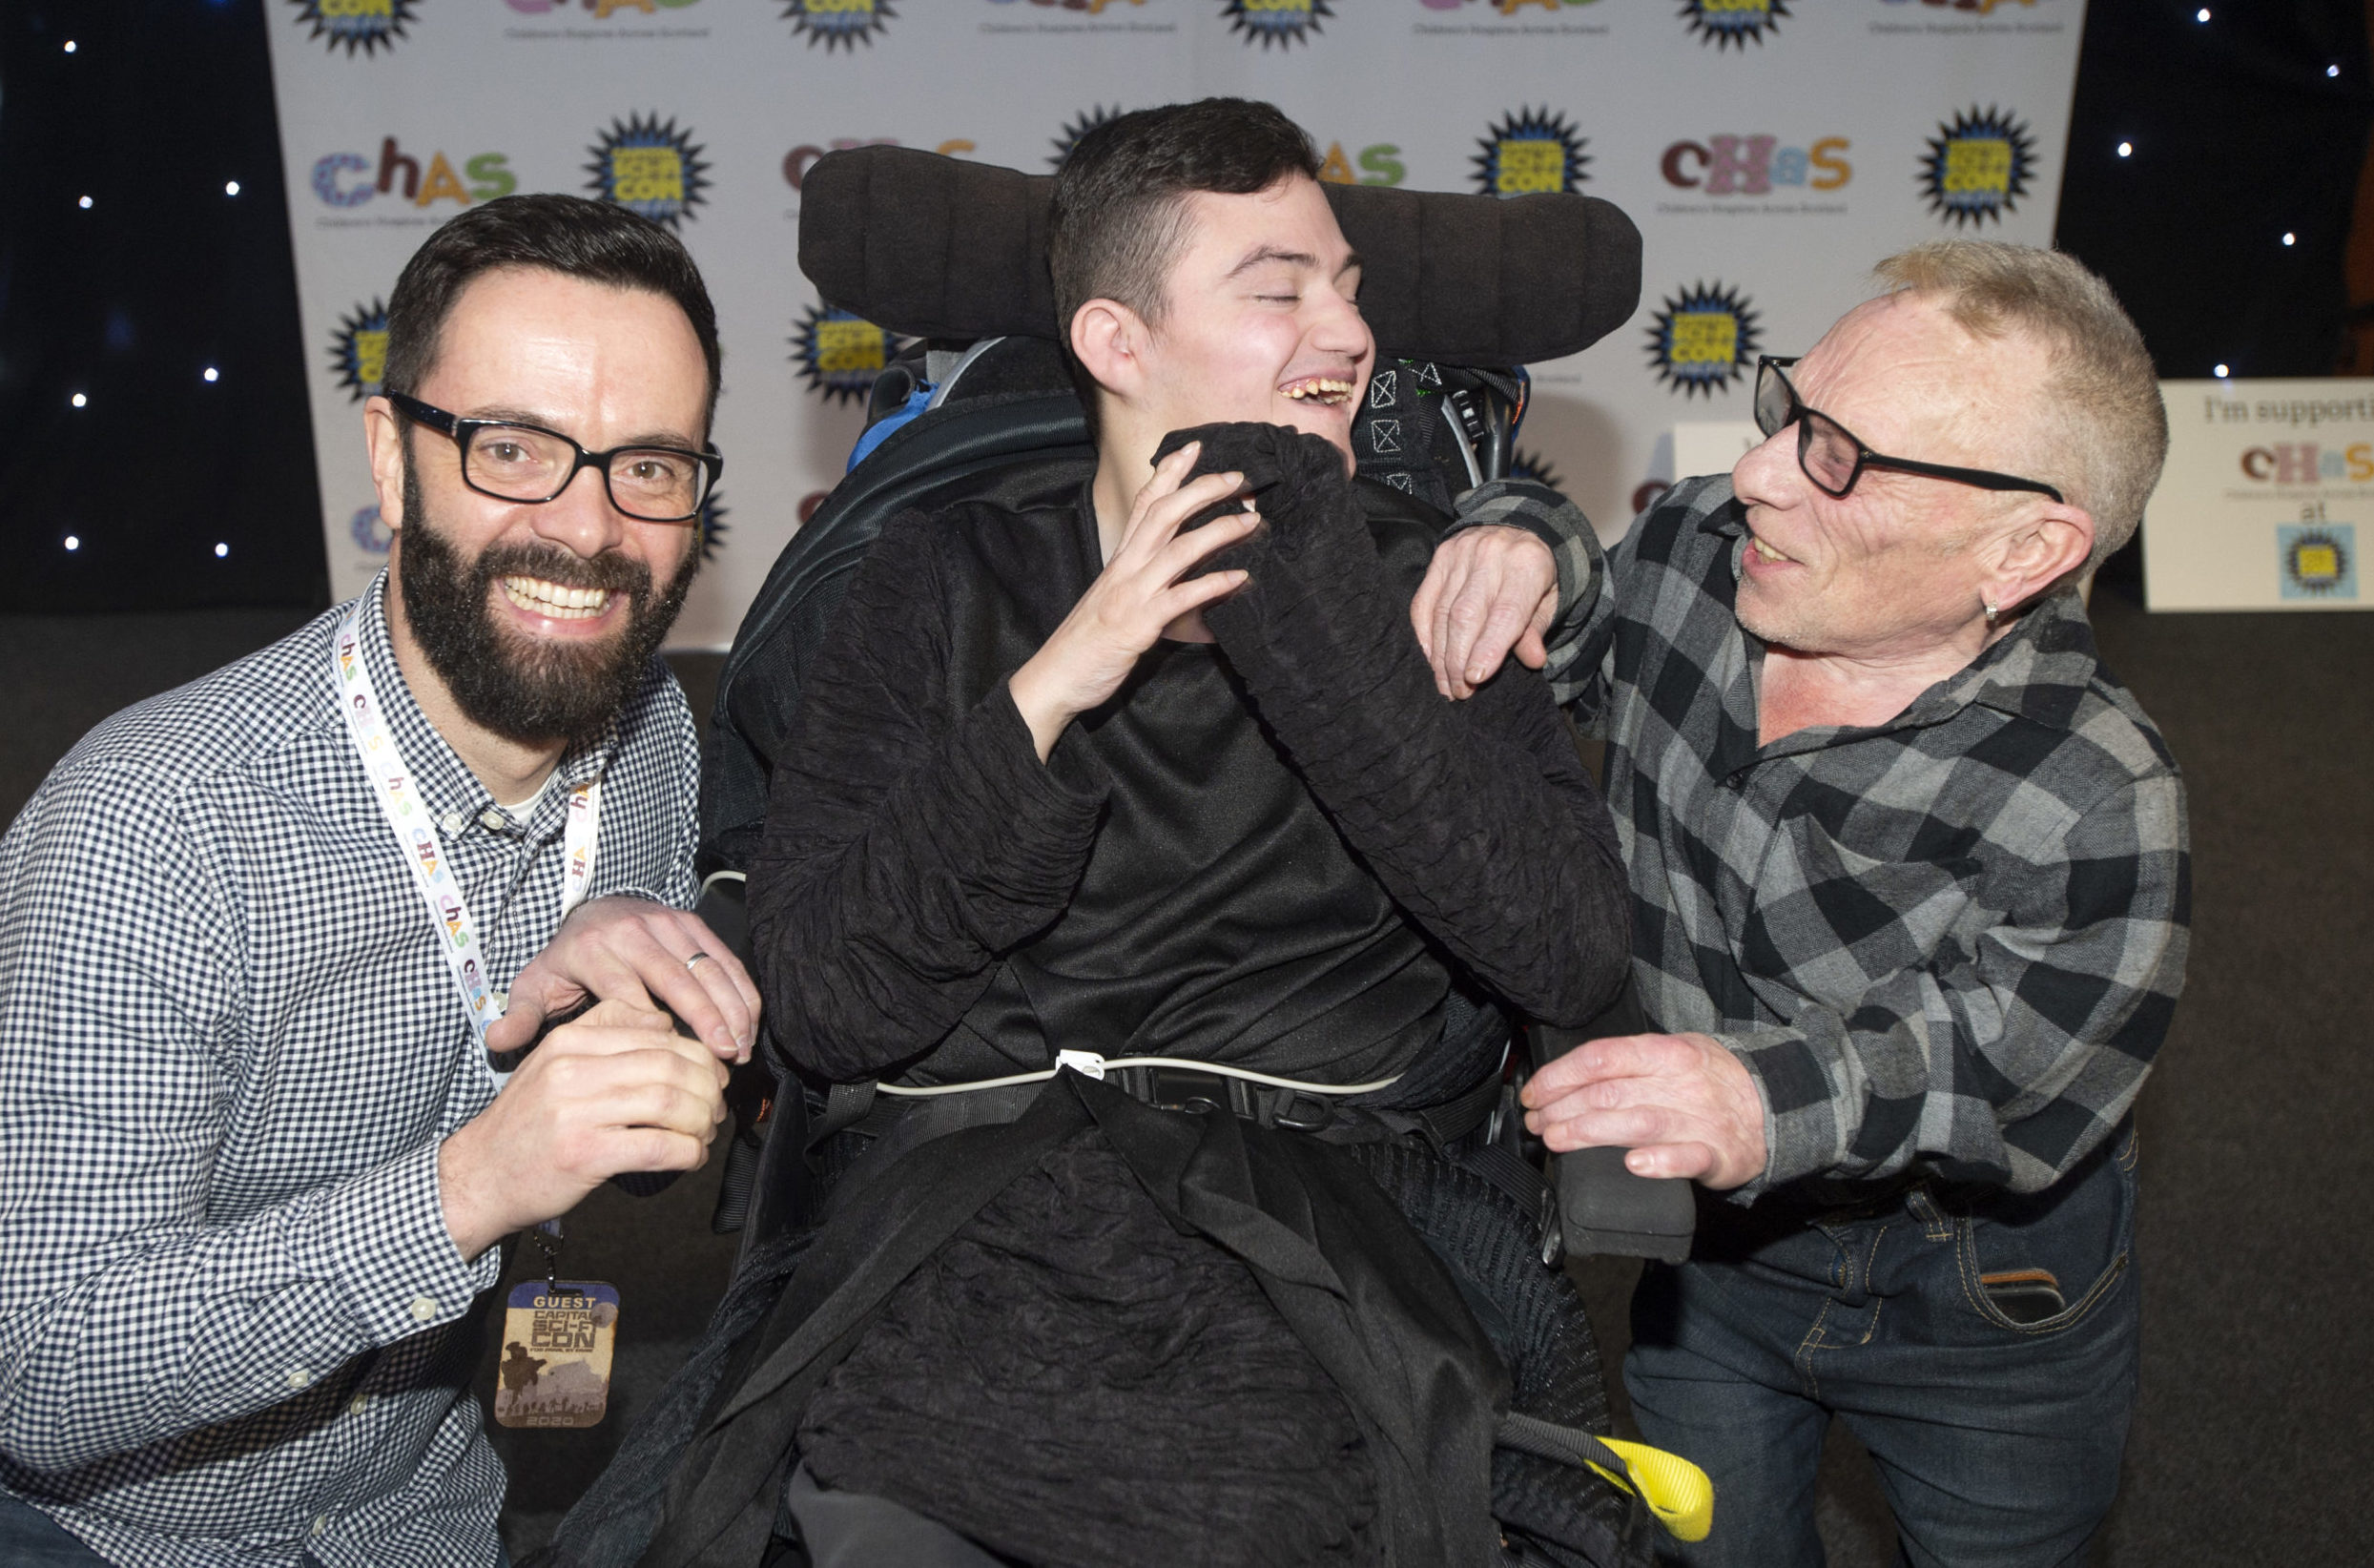 Pictured is Adam Meldrum, from Kirkcaldy, with James Mackenzie (Raven) and Jimmy Vee who played R2D2 in the Star Wars movies.